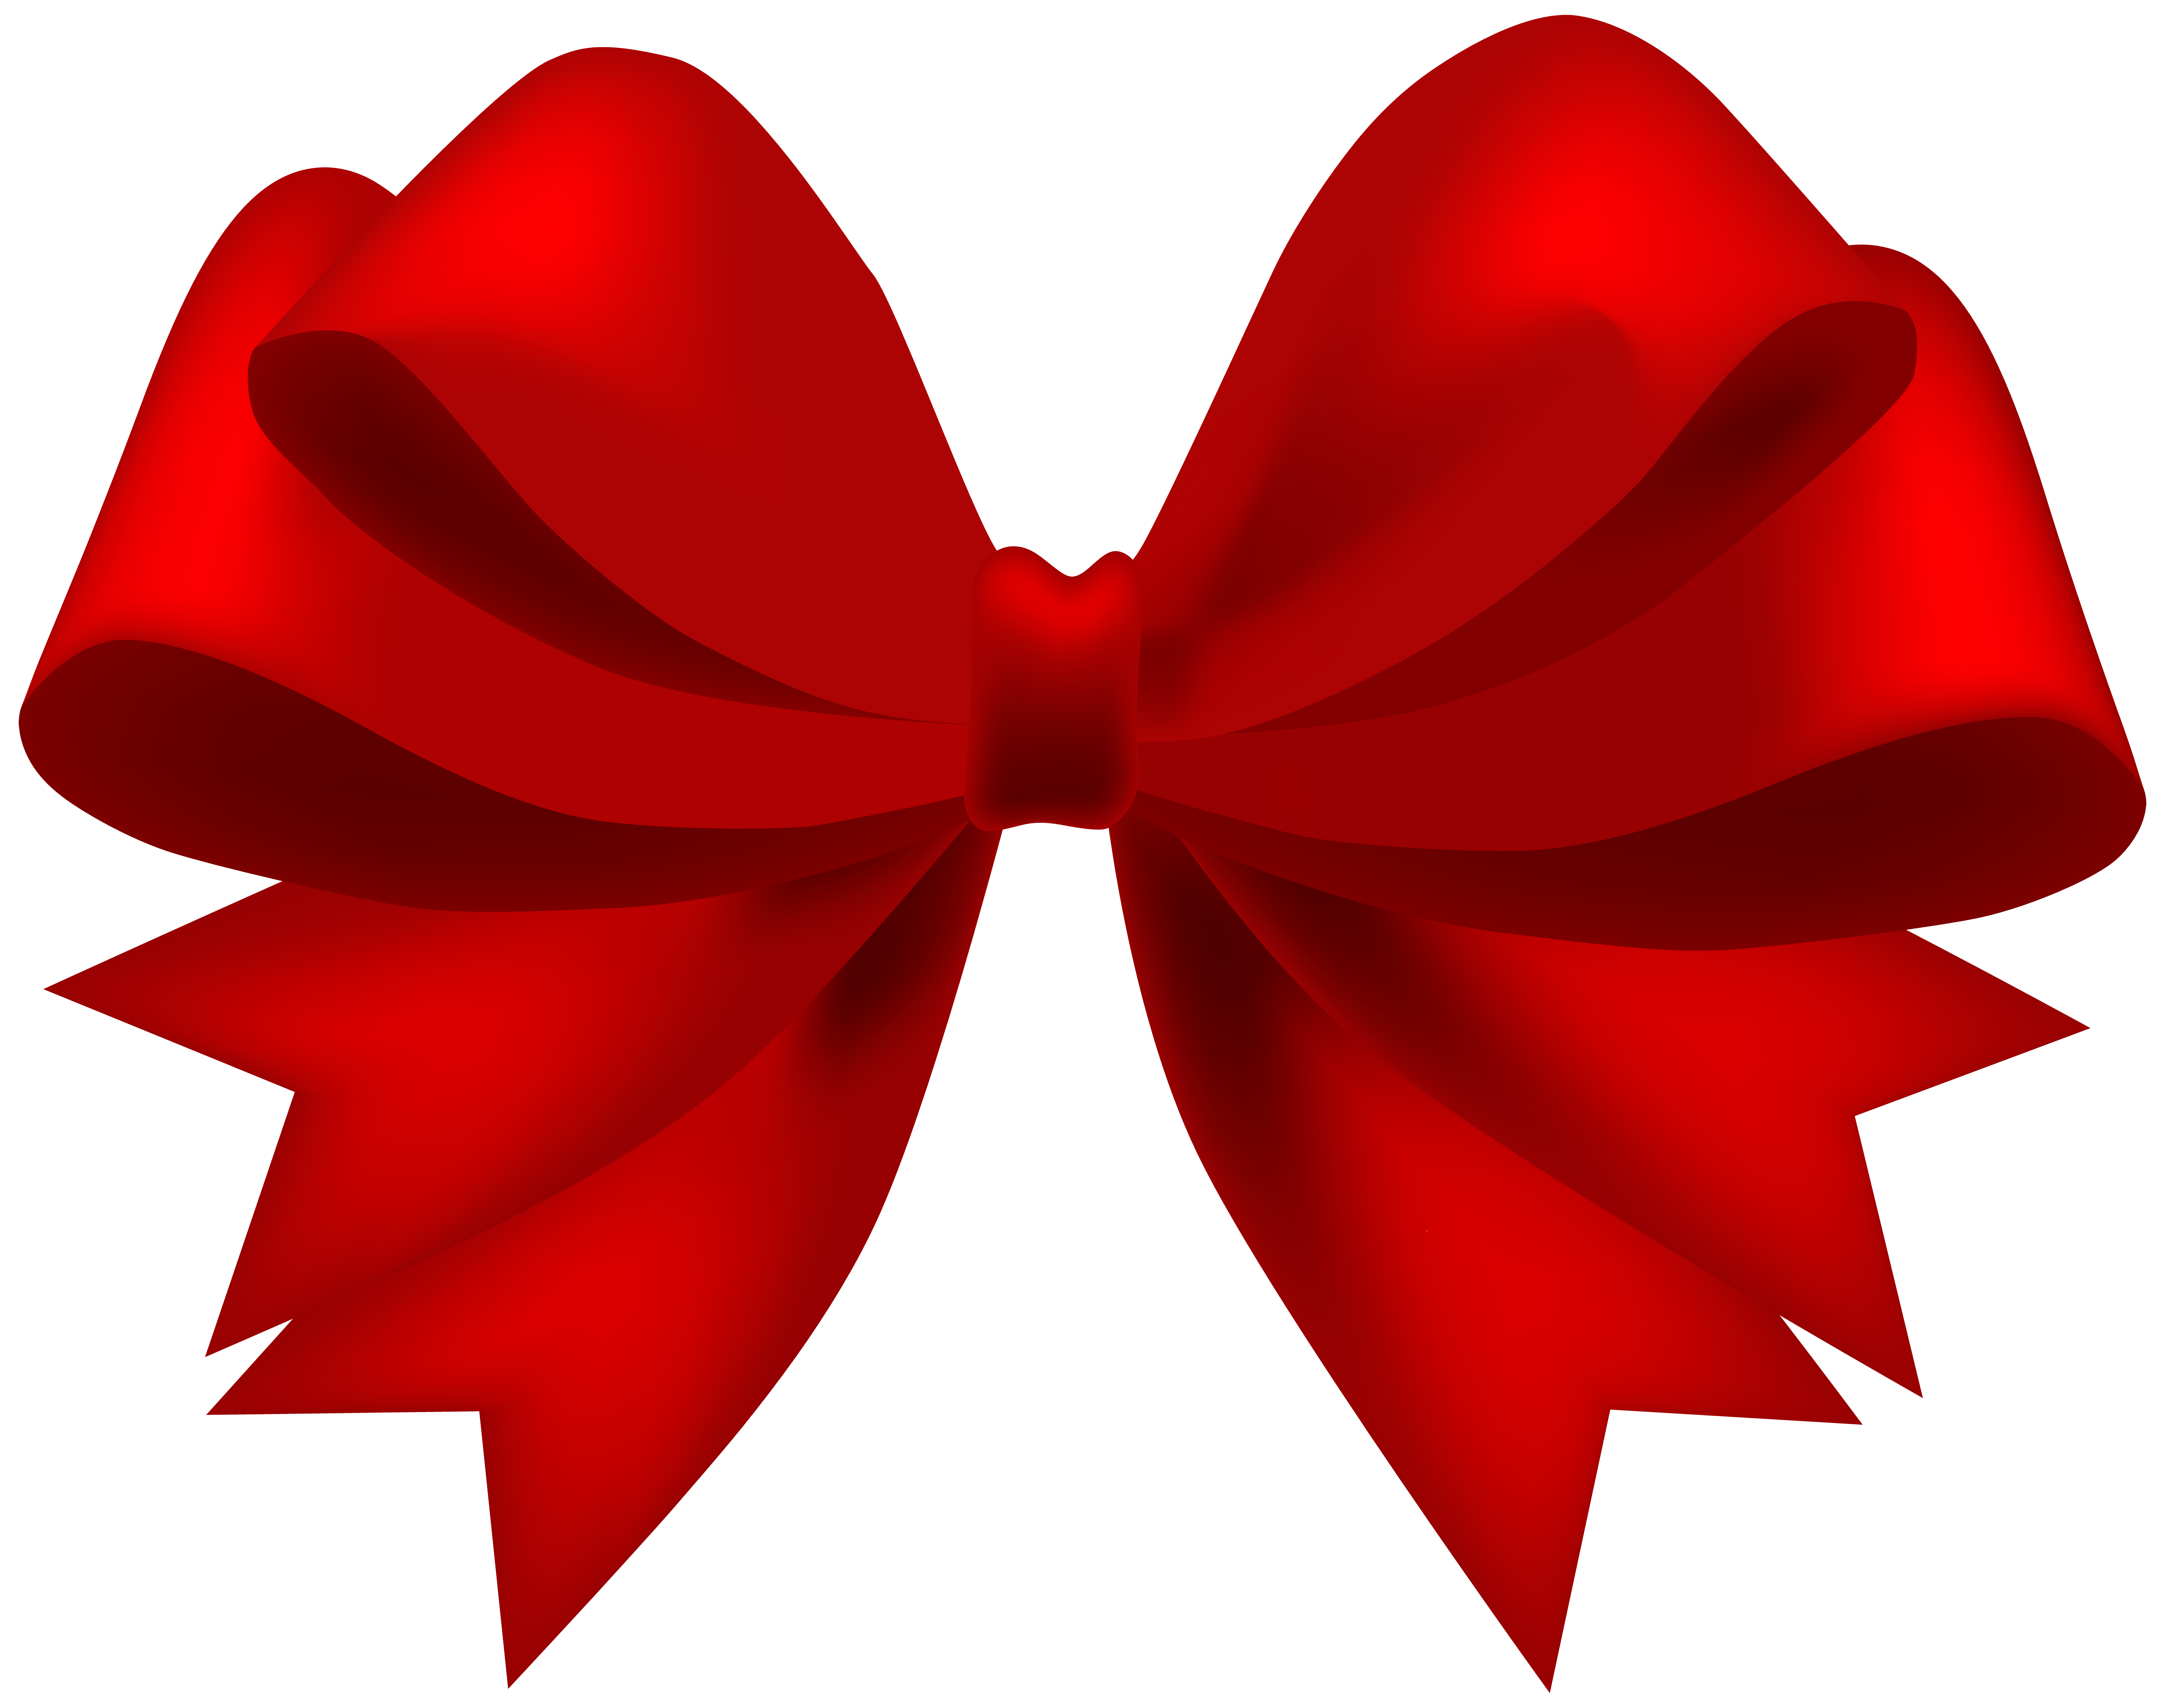 Bows clipart red. Bow transparent png clip